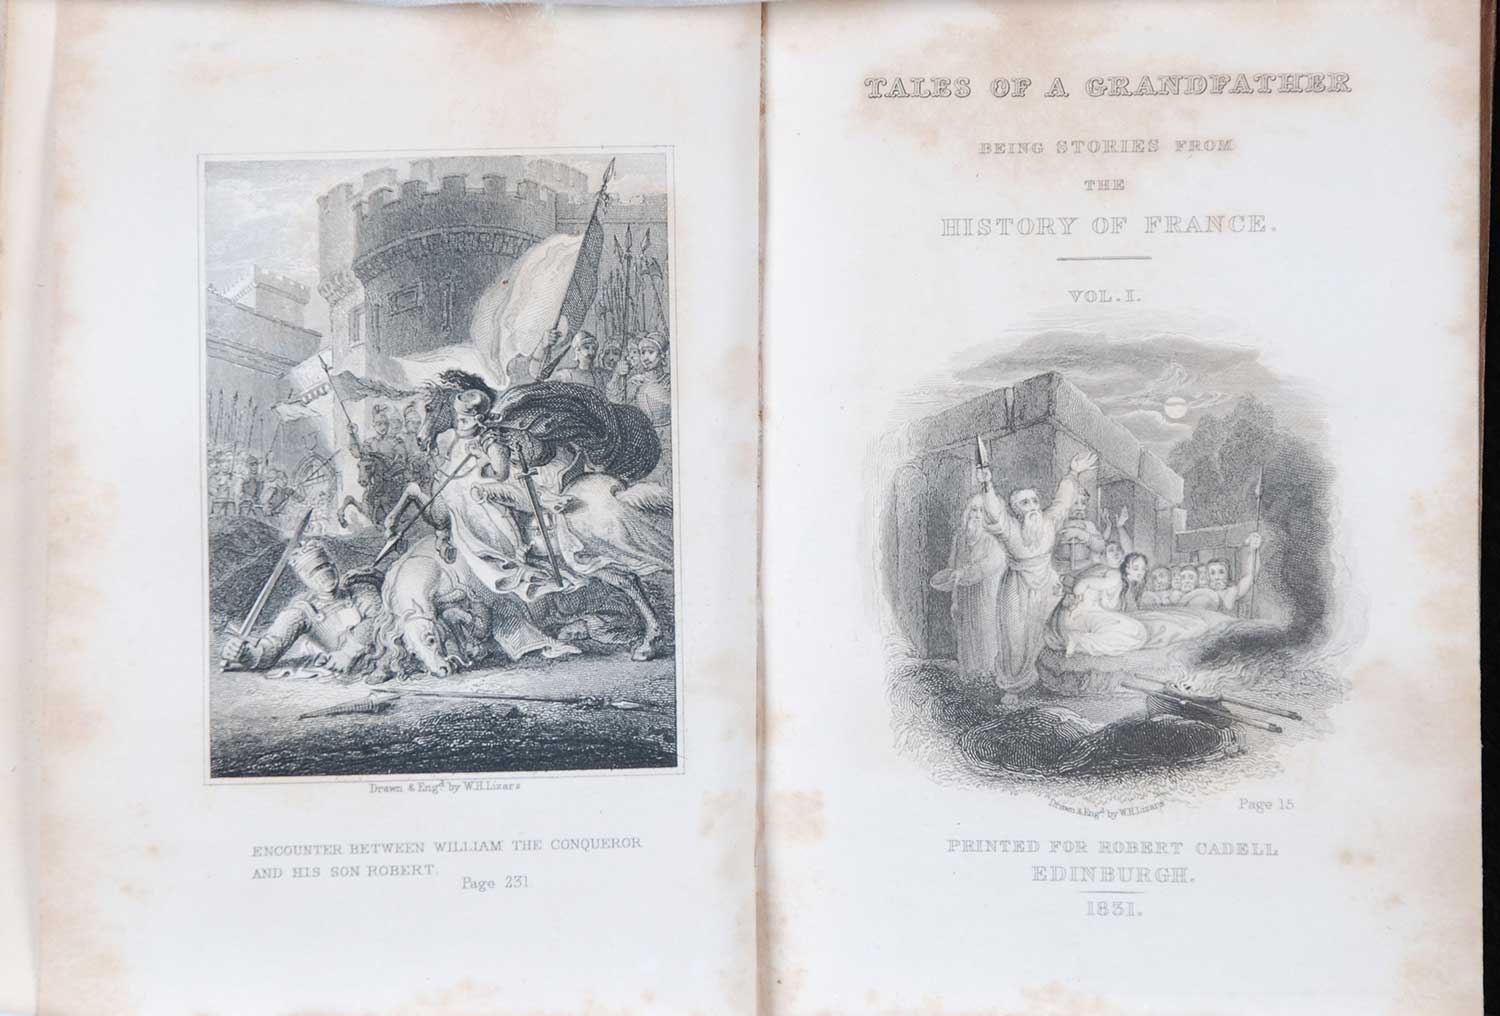 [Sir Walter Scott]. <em>Tales from a grandfather: being stories taken from the history of France.</em> [1st edition]. Printed for Robert Cadell, Edinburgh; Whittaker and Co., London; and John Cumming, Dublin, 1831. Three volumes; Vol. 1 displayed.